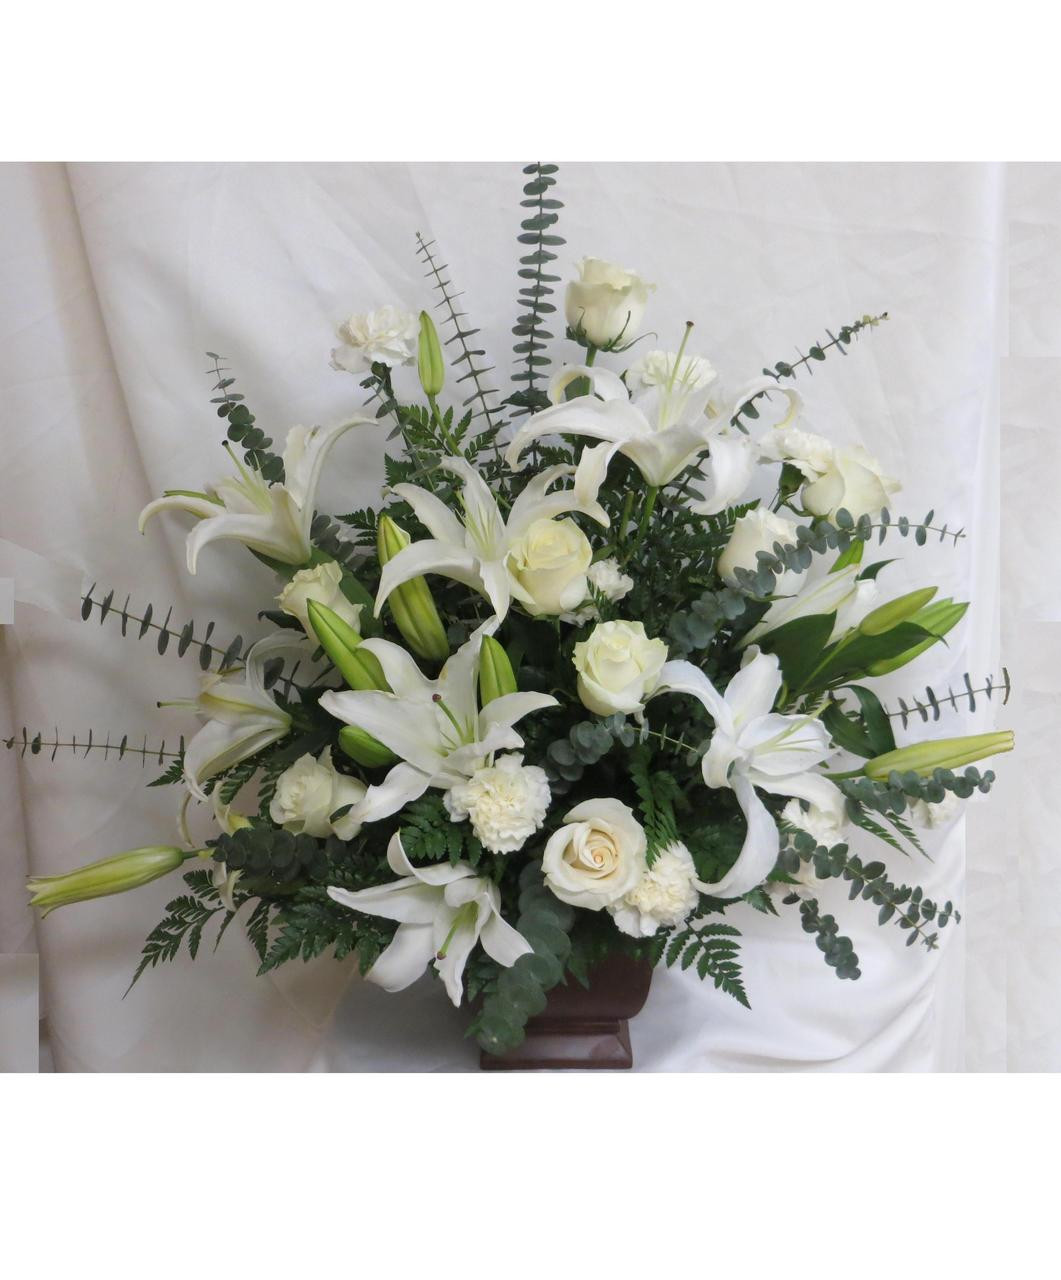 White funeral flowers delivered to Houston funeral homes in Houston TX